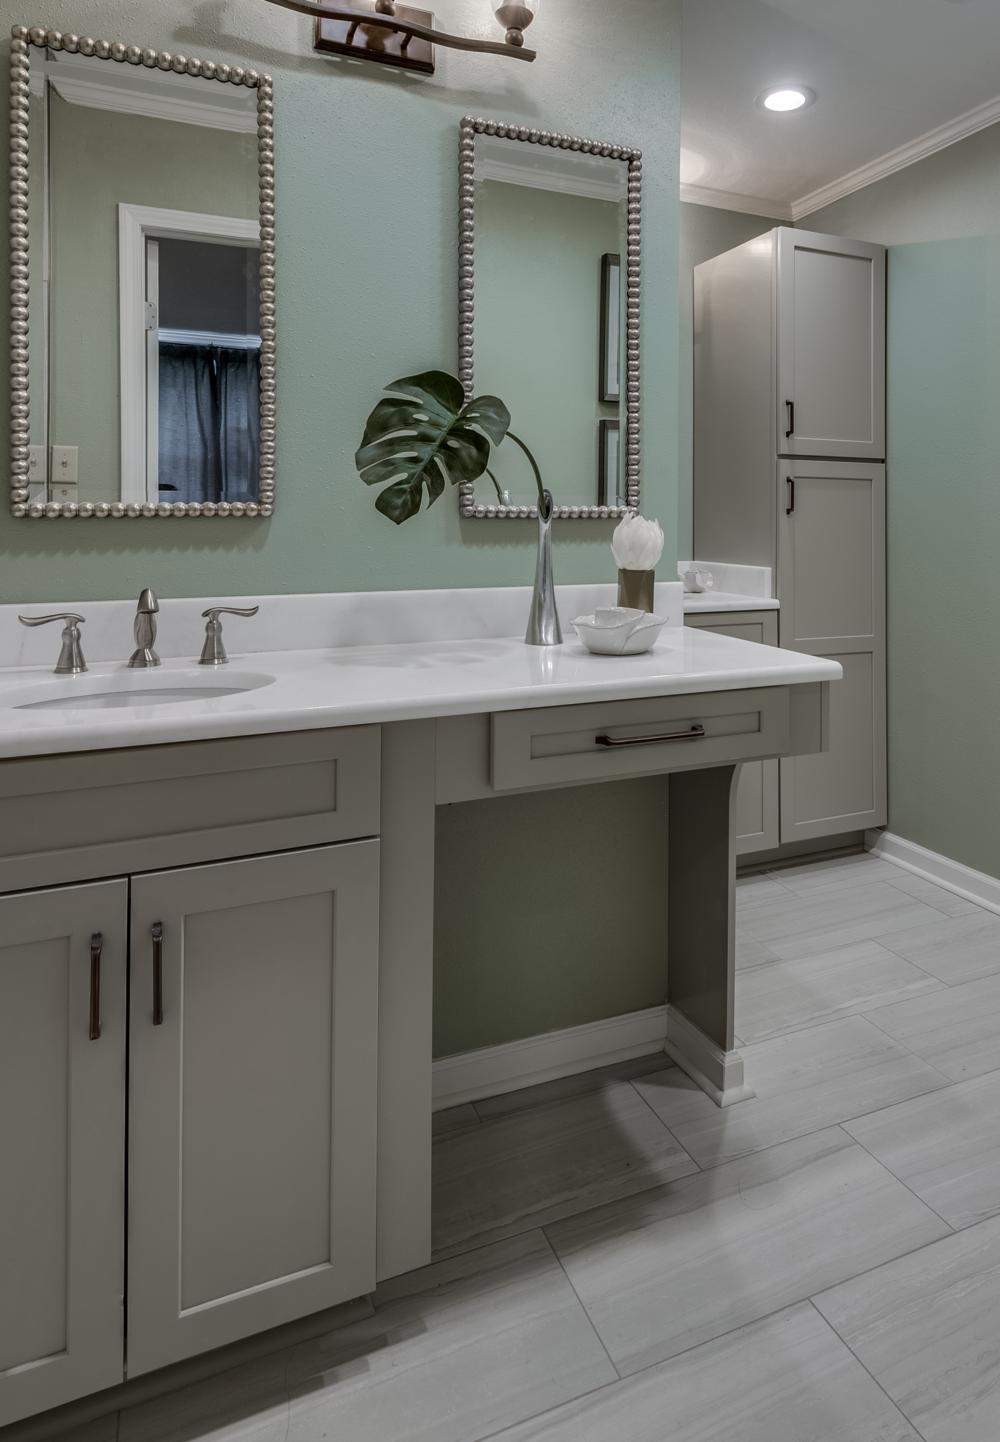 master bathroom garden district new orleans old metairie